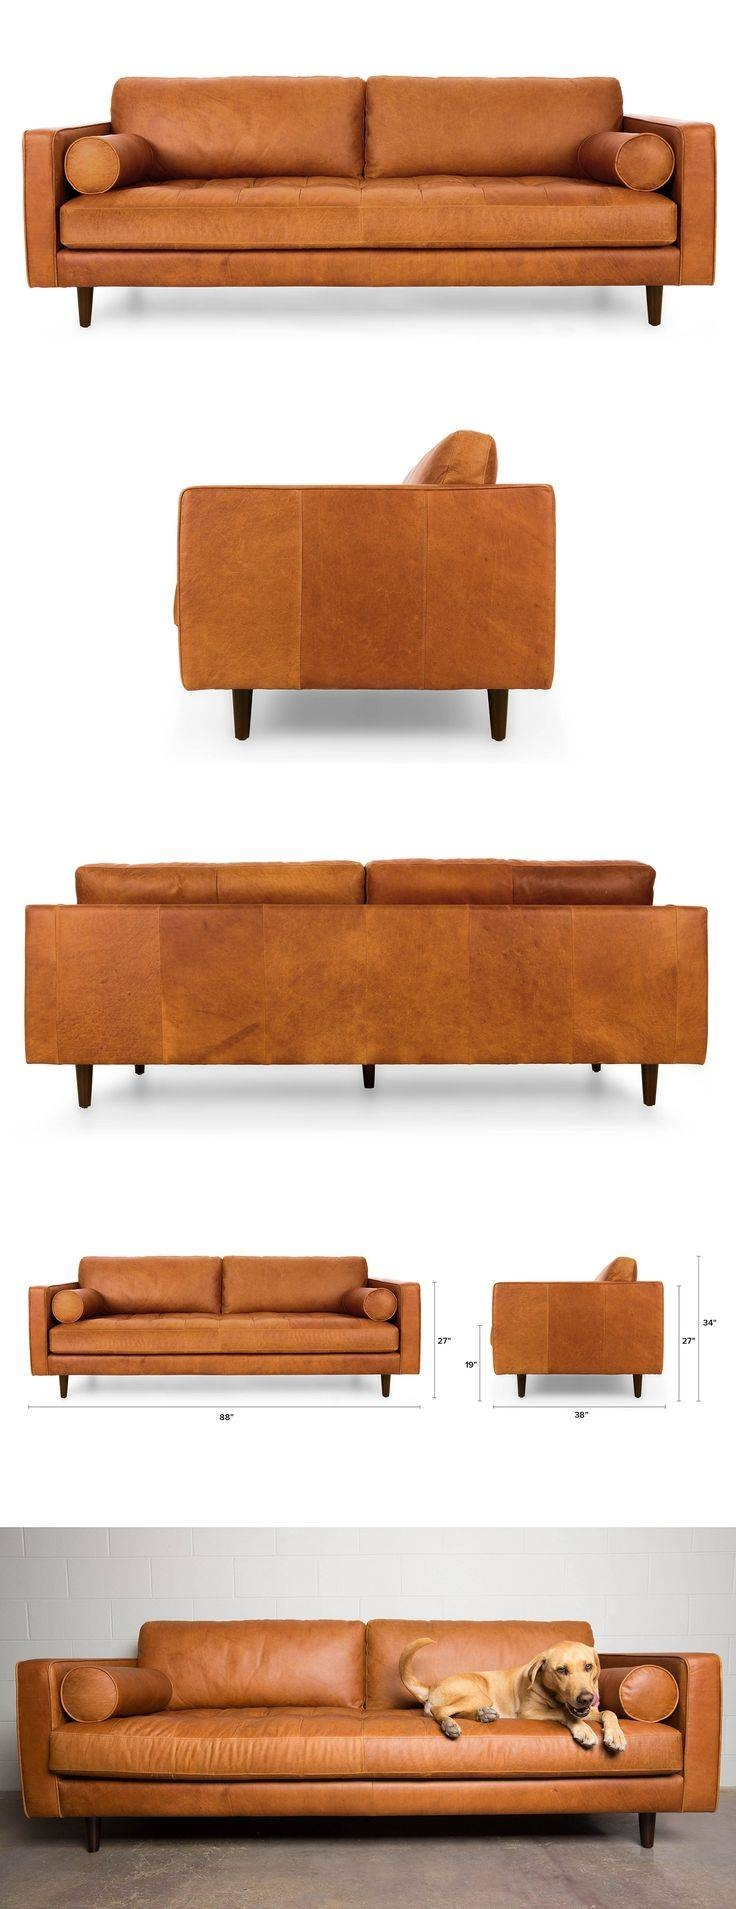 Best 25+ Leather Sofas Ideas On Pinterest | Leather Couches, Brown throughout Leather Bench Sofas (Image 3 of 30)